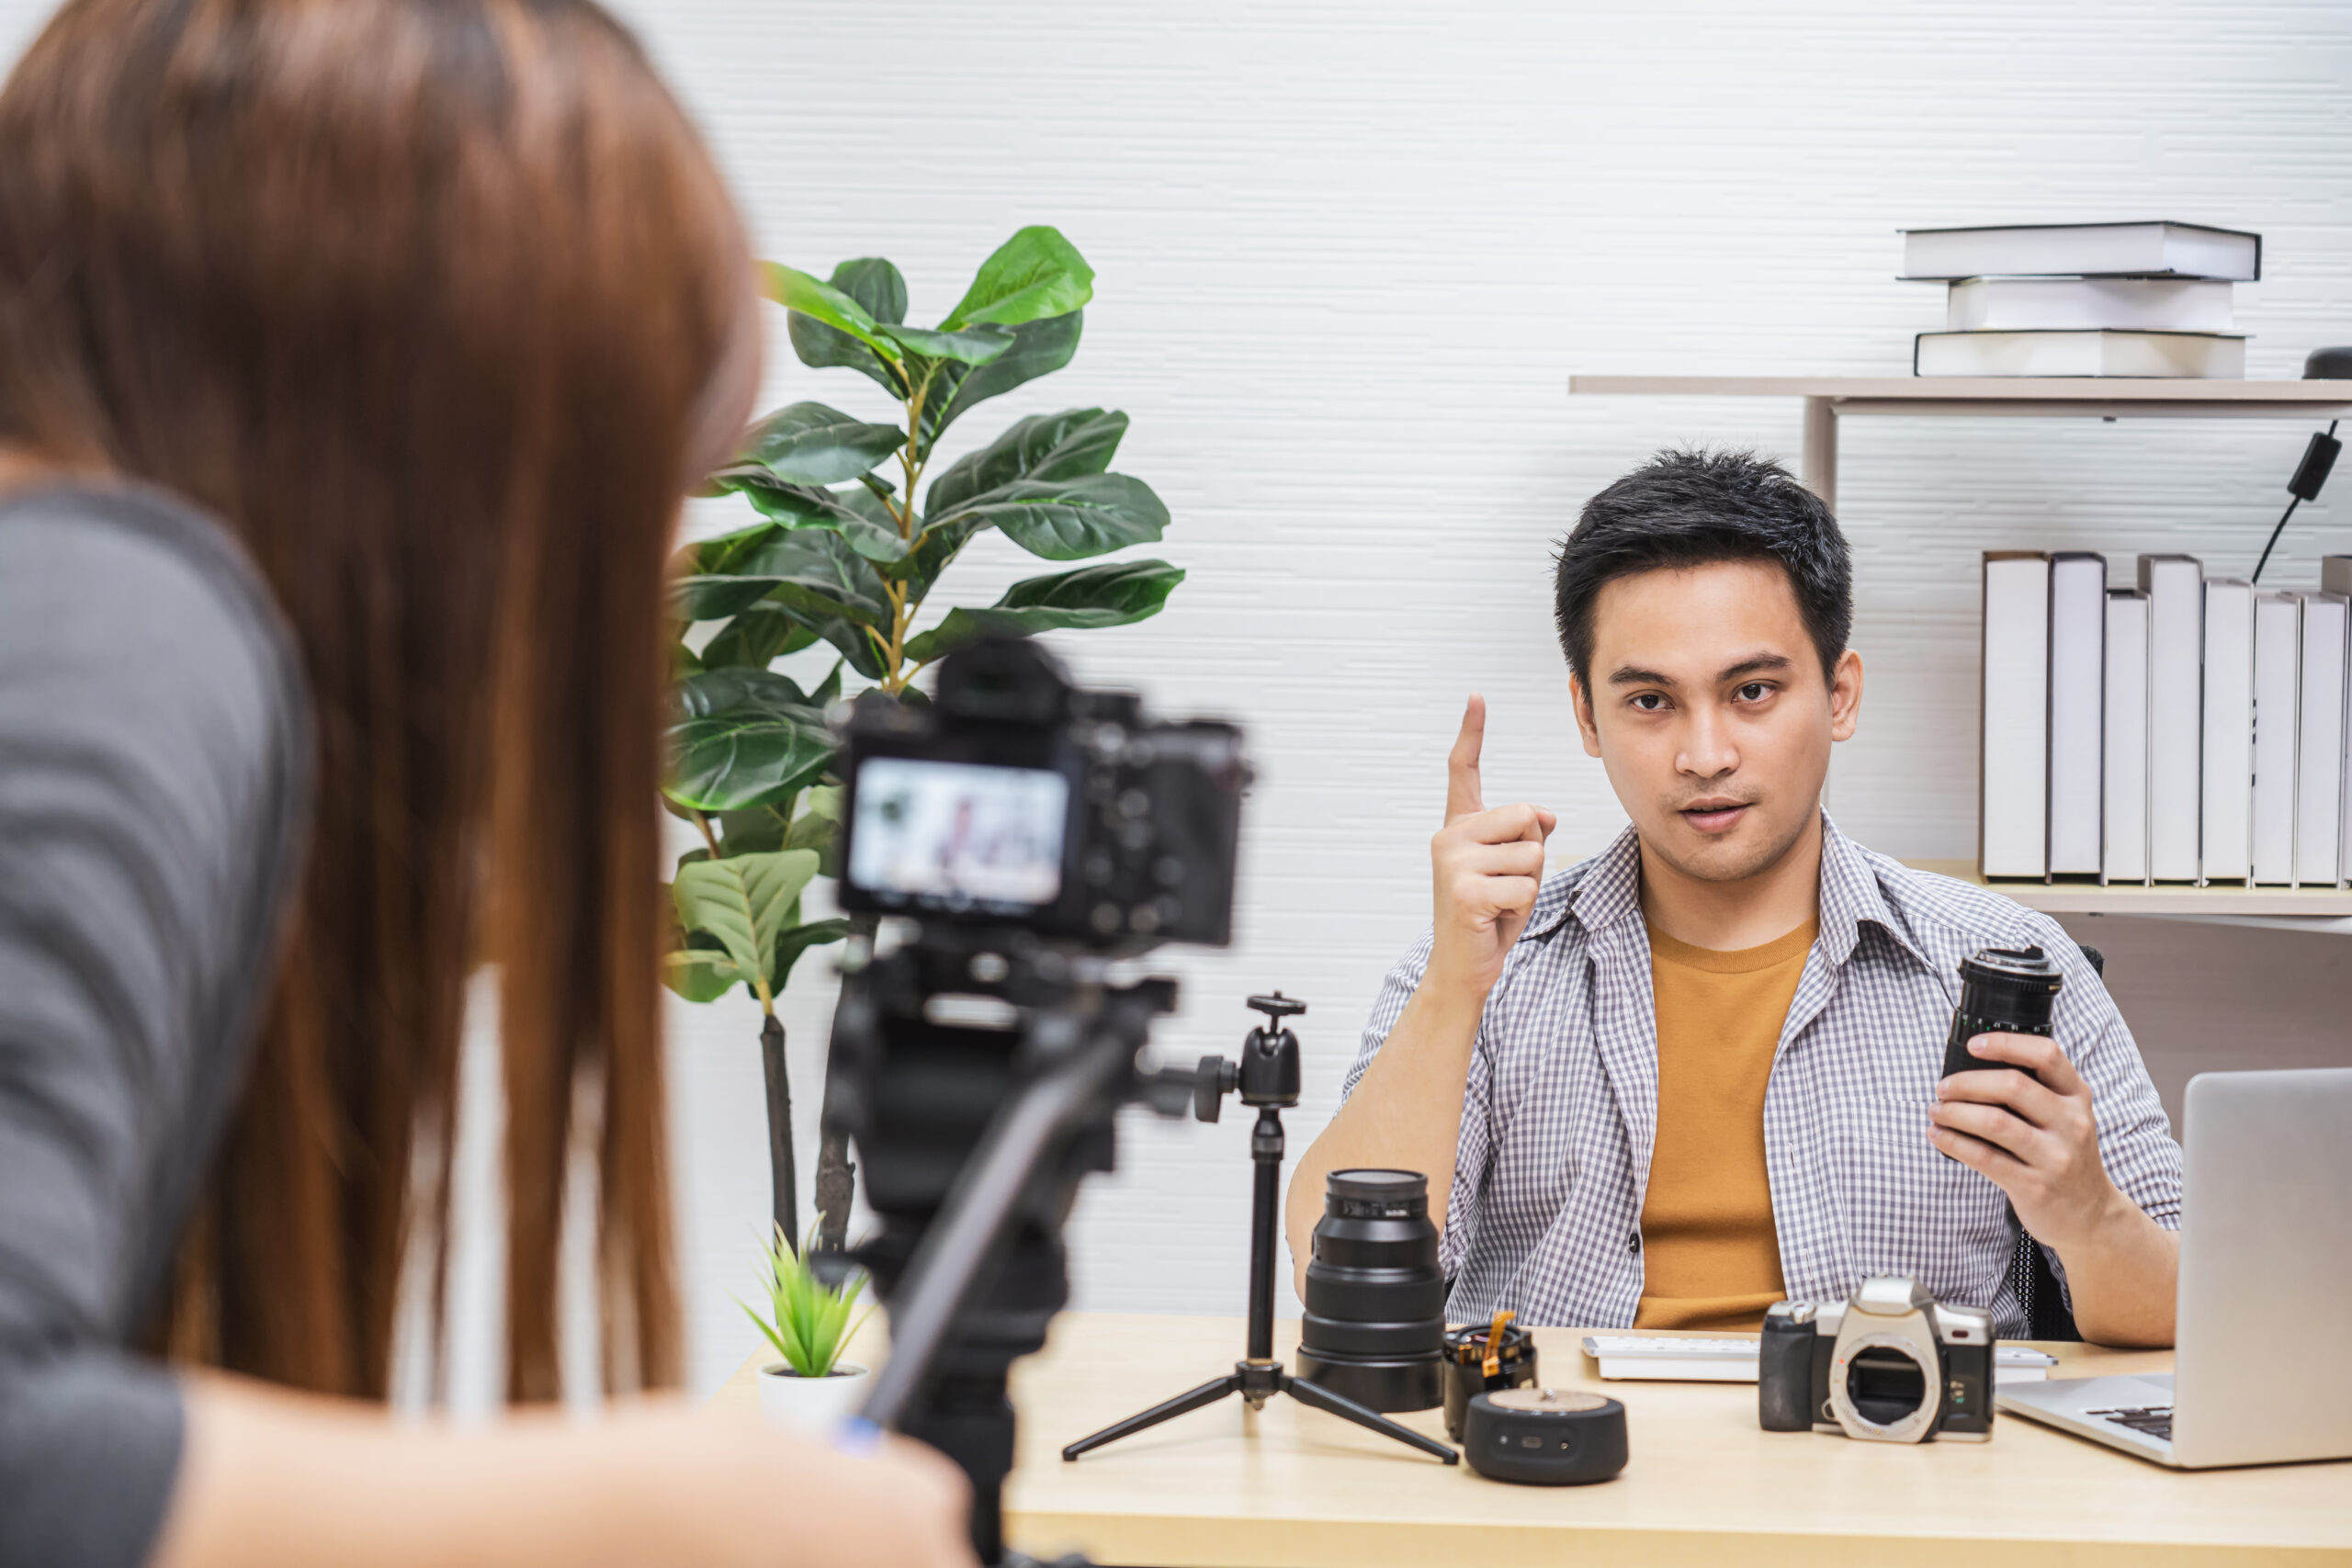 Camera taking video and live with laptop of Vlogger man